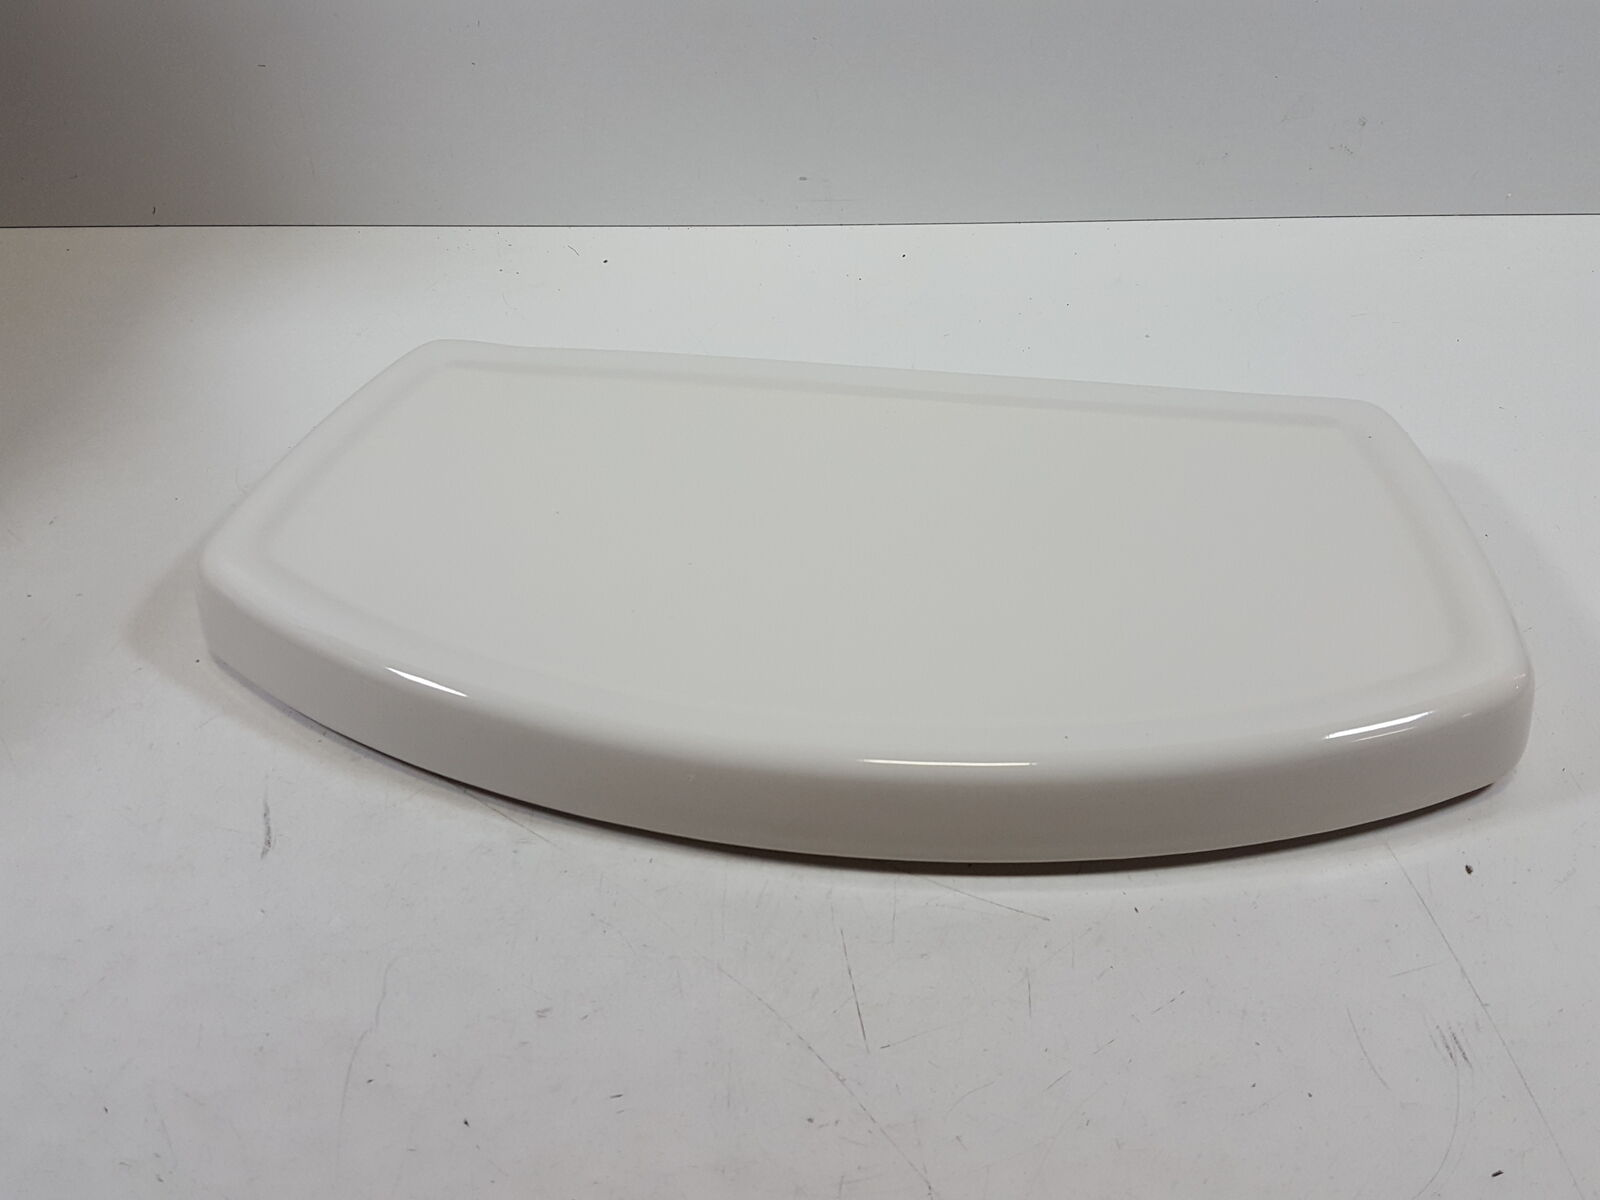 Linen American Standard 735121 400 222 Cadet And Glenwall Right Height Toilet Tank Cover For Models 4021 Toilet Tank Covers